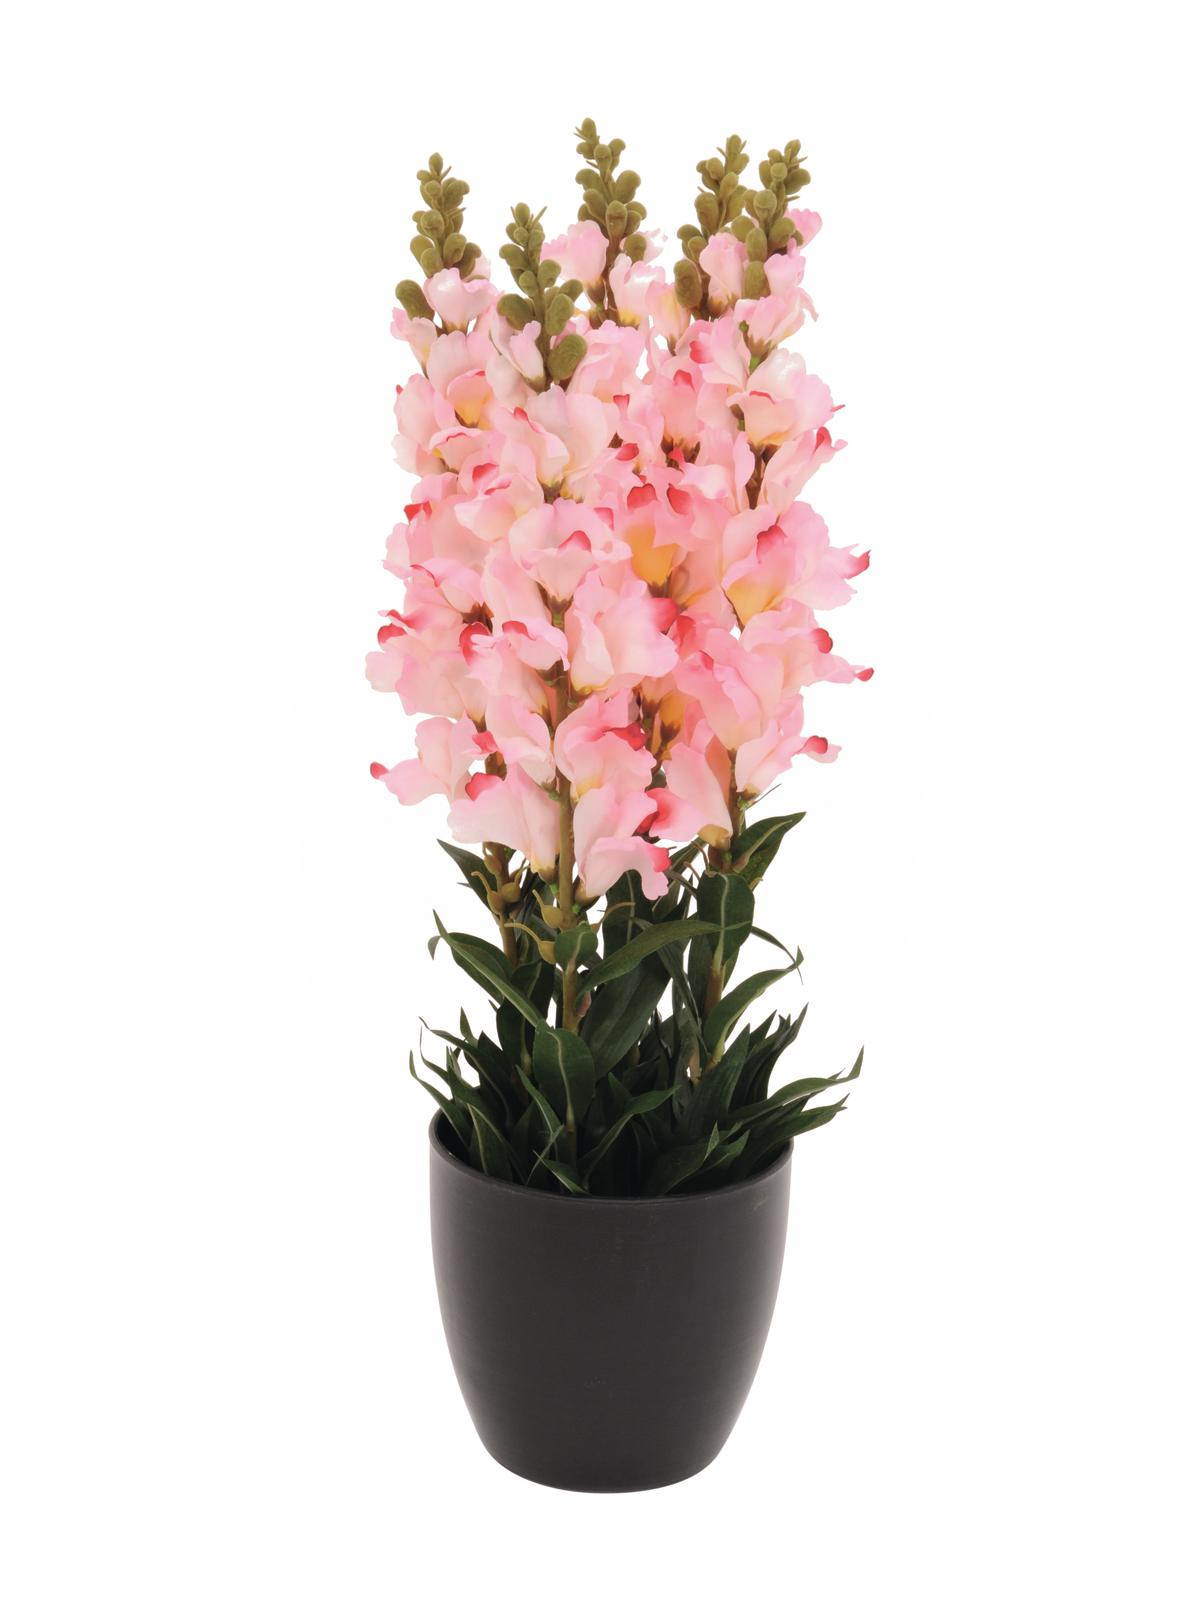 EUROPALMS pianta artificiale Antirrhinum, rosa, 65cm